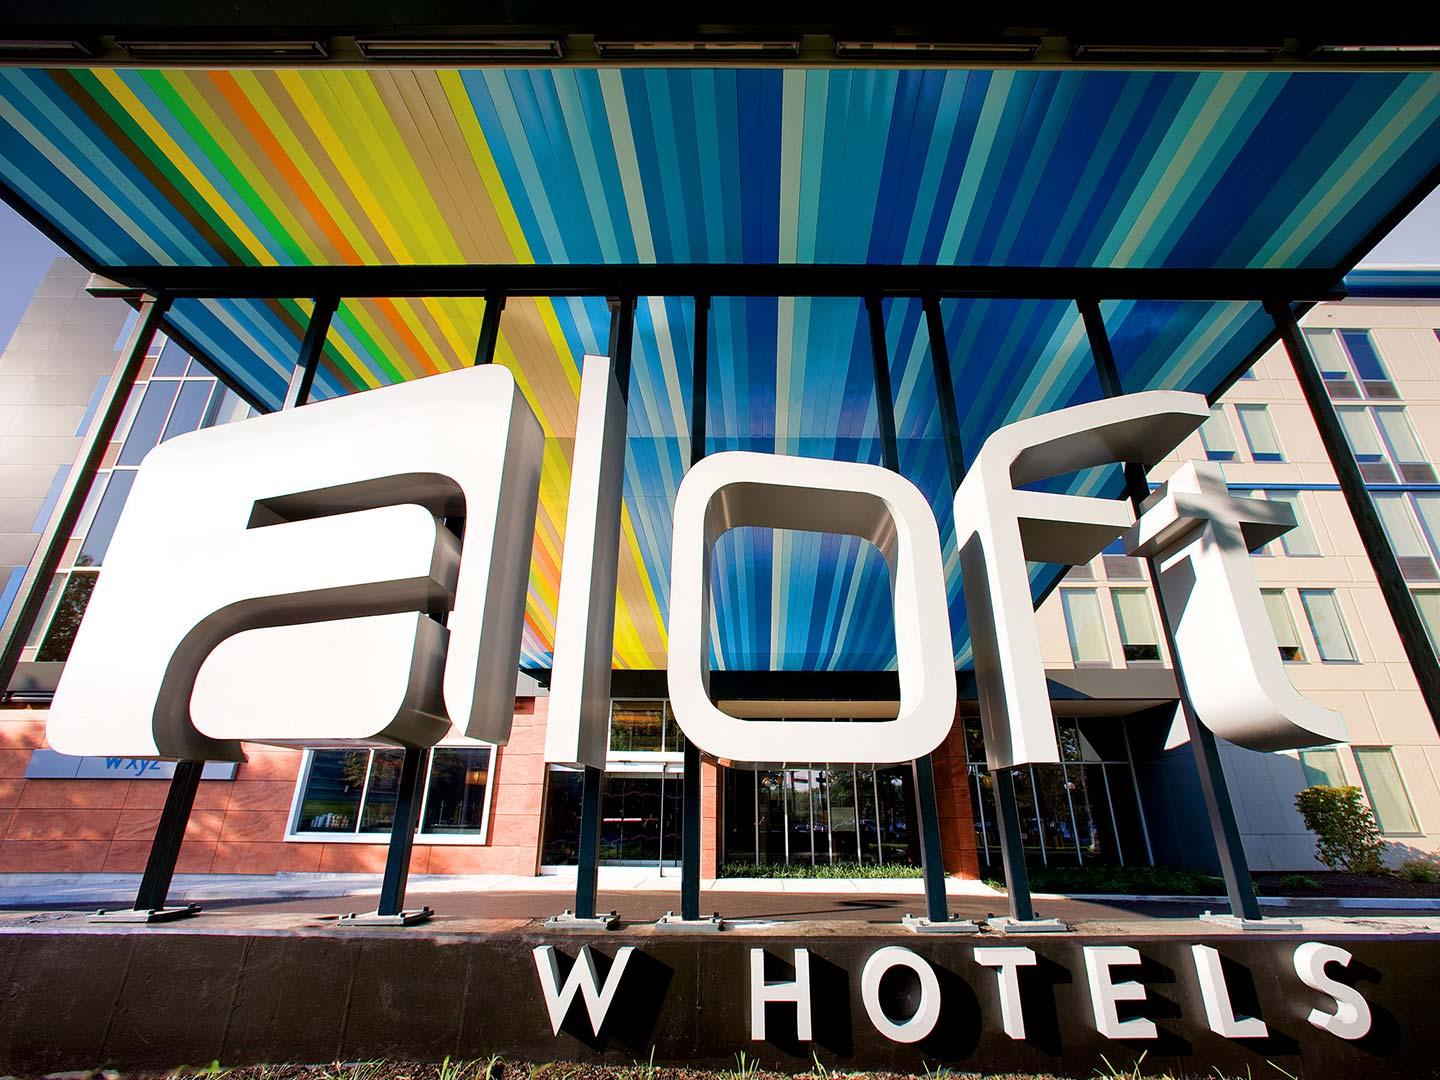 aloft by W & element by Westin Hotel Now Open!